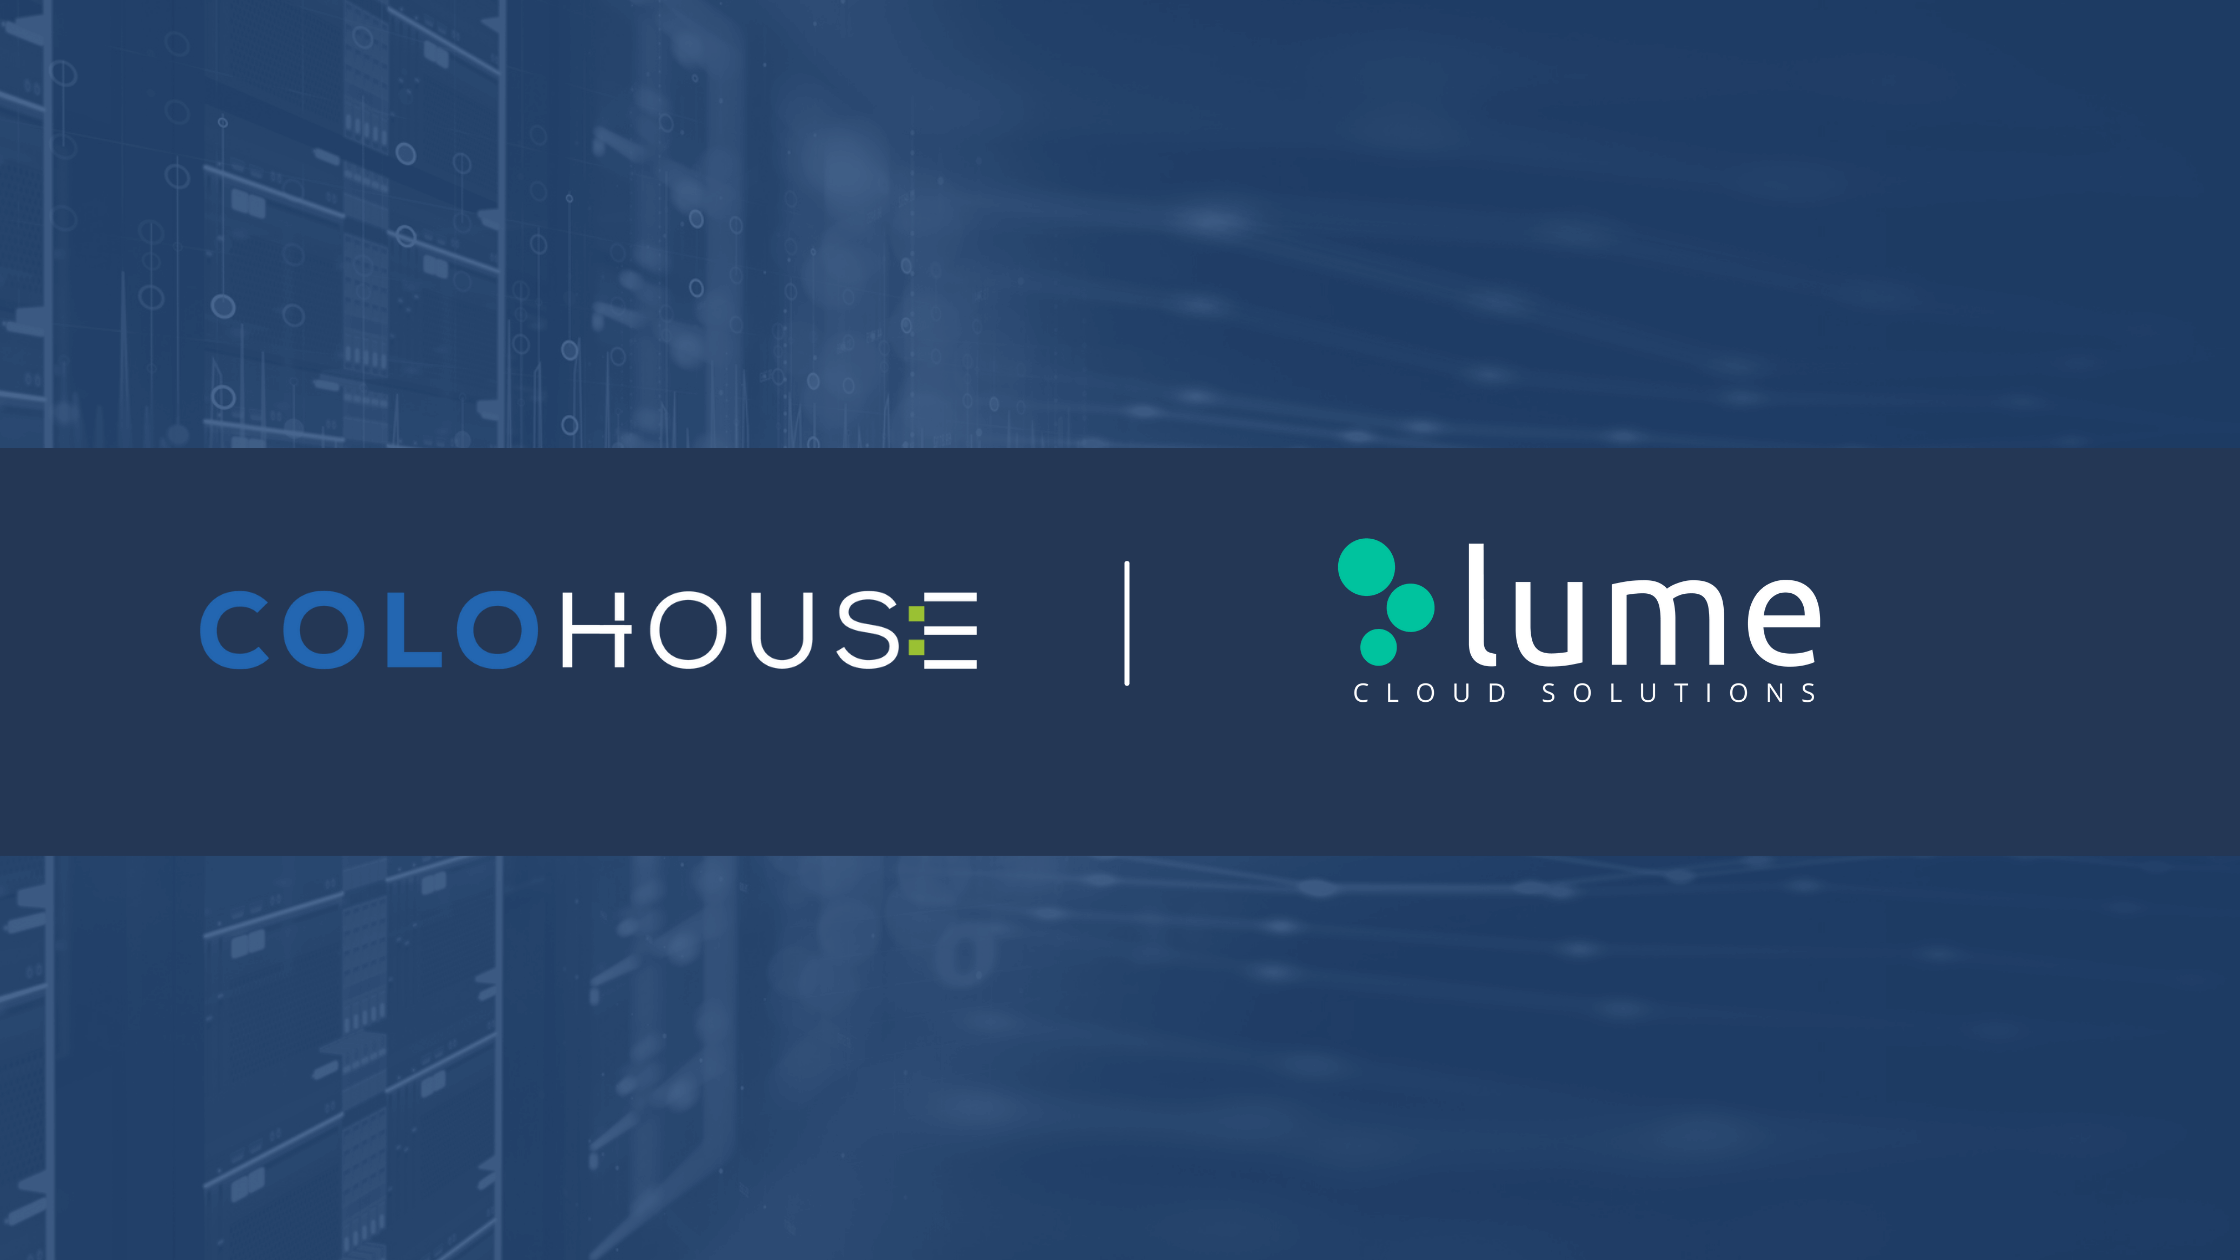 A blog banner with the colohouse logo and lume cloud logo